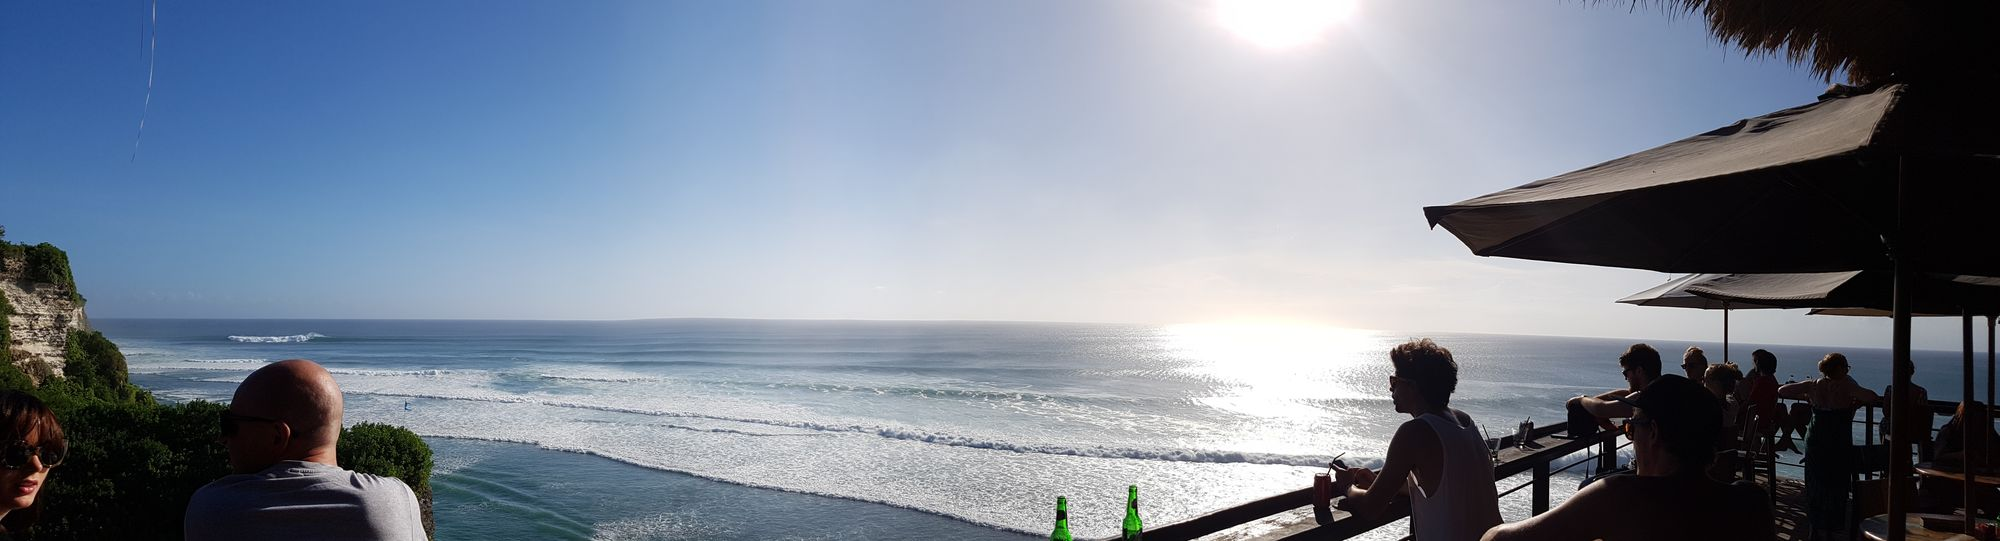 Single Fin Bali Island Indonesia_photography Come To Bali Landscape_Collection Samsung Galaxy S7 Nature Photography Panorama View May 2016 Point Of View Beautiful Nature Summer Vibes Nature Escape💚 Sea_collection Awesome_shots Sillhouette Sky And Sea 3 Dimension Enjoying The Sun Enjoying The View Sunlight Reflection The Great Outdoors With Adobe Samsungphotography Bali Beach The Great Outdoors - 2016 EyeEm Awards